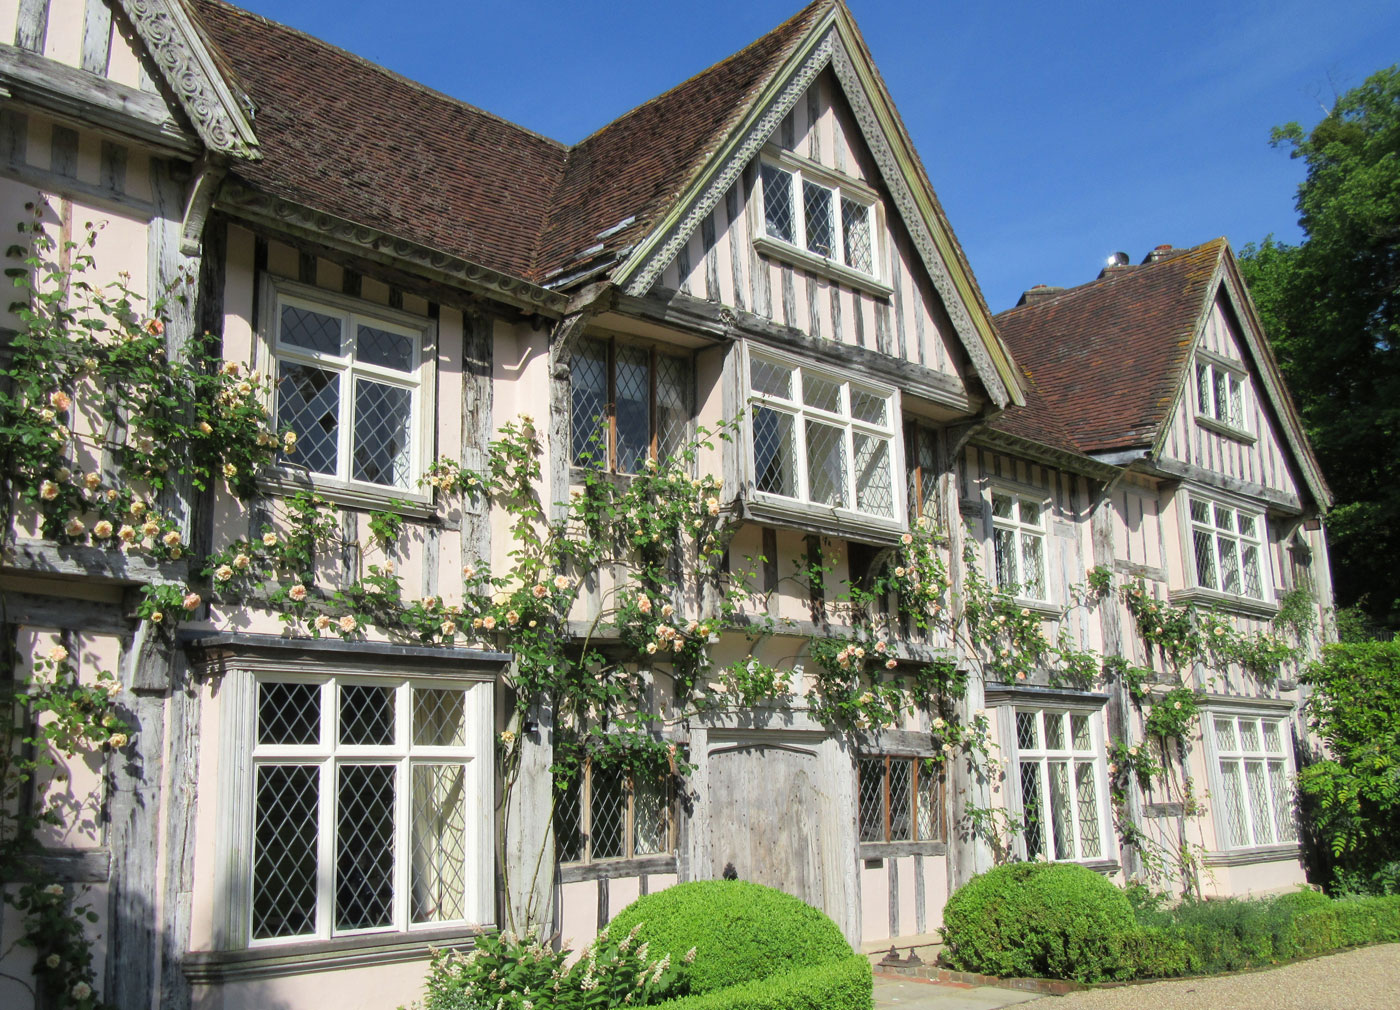 Pashley Manor Gardens - gardens to visit on the border of